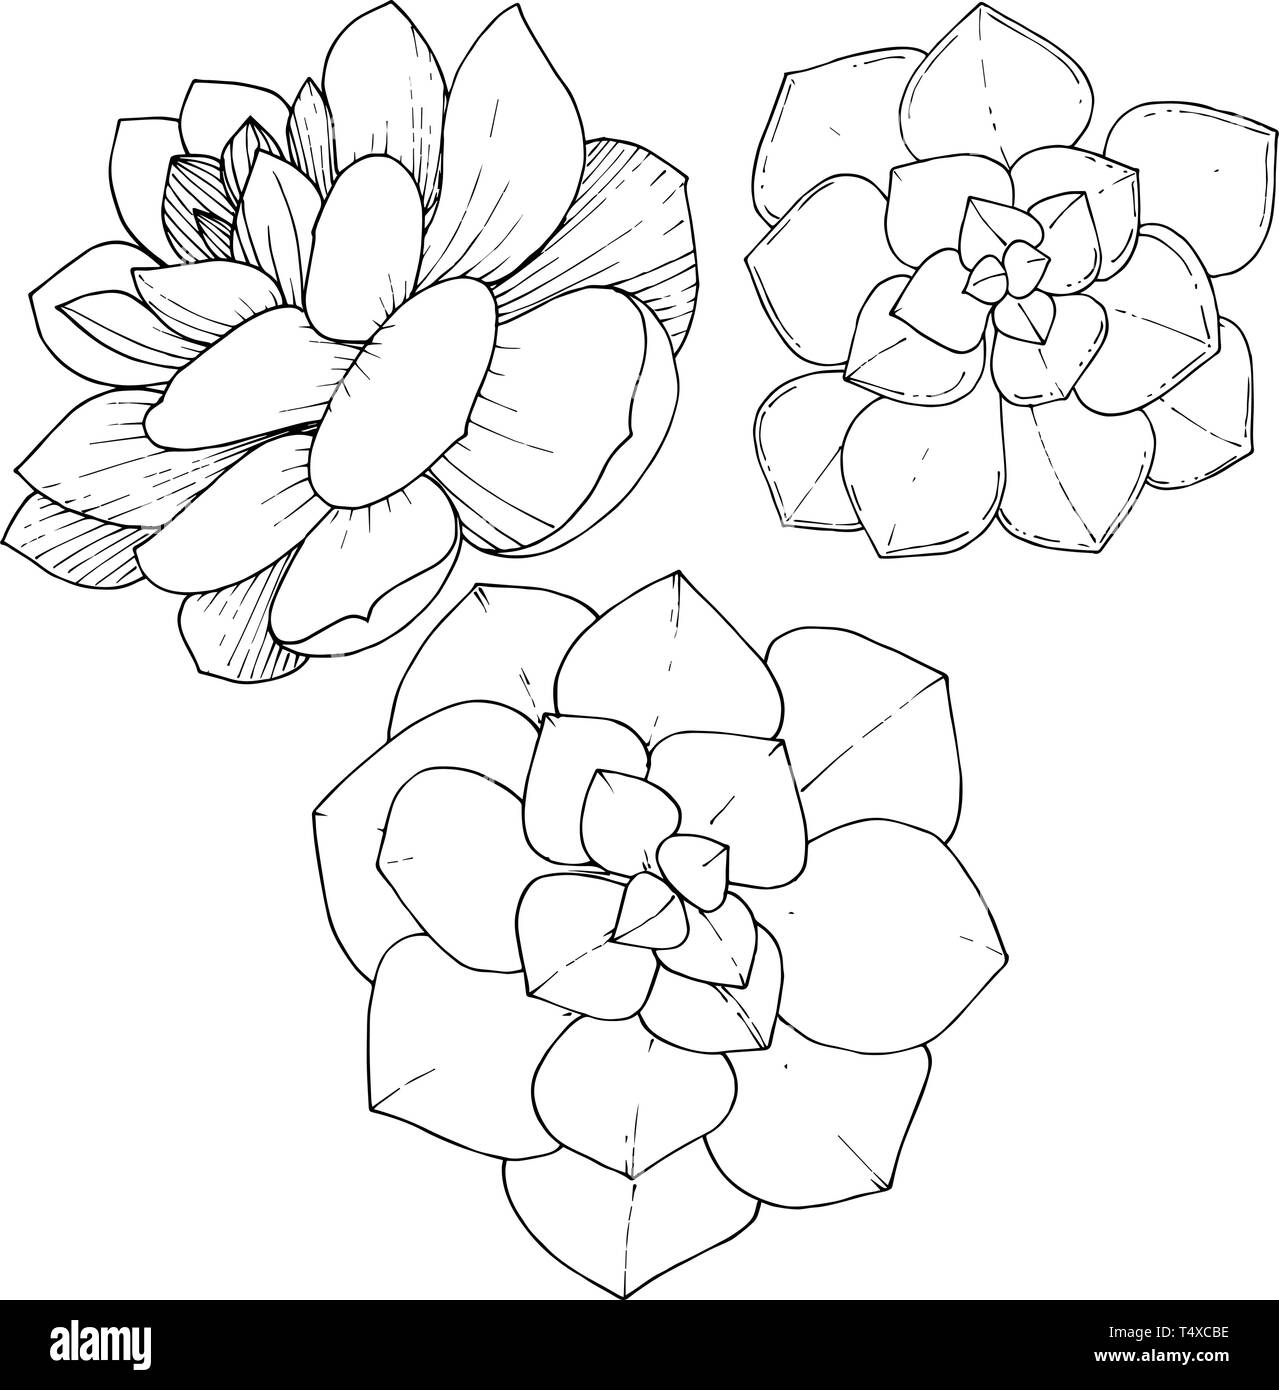 Succulents Black And White Stock Photos Images Alamy